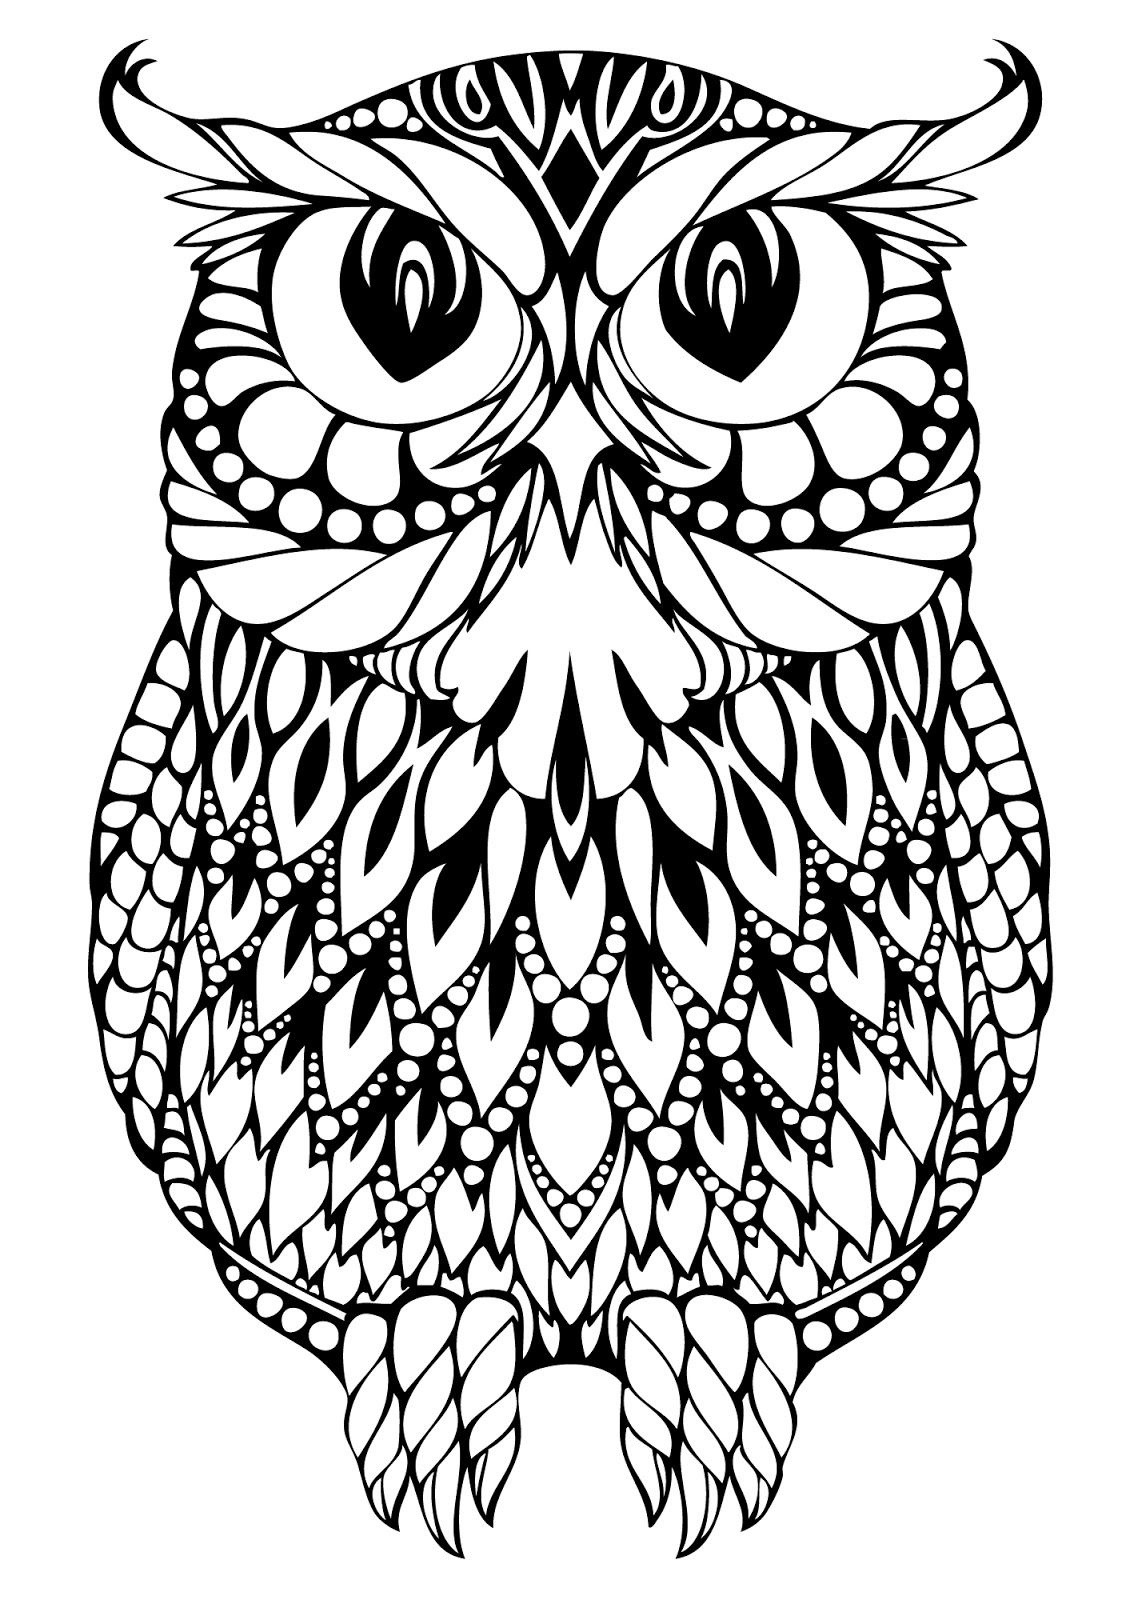 coloring pages owls top 10 cute owl hard coloring pages image free coloring coloring owls pages